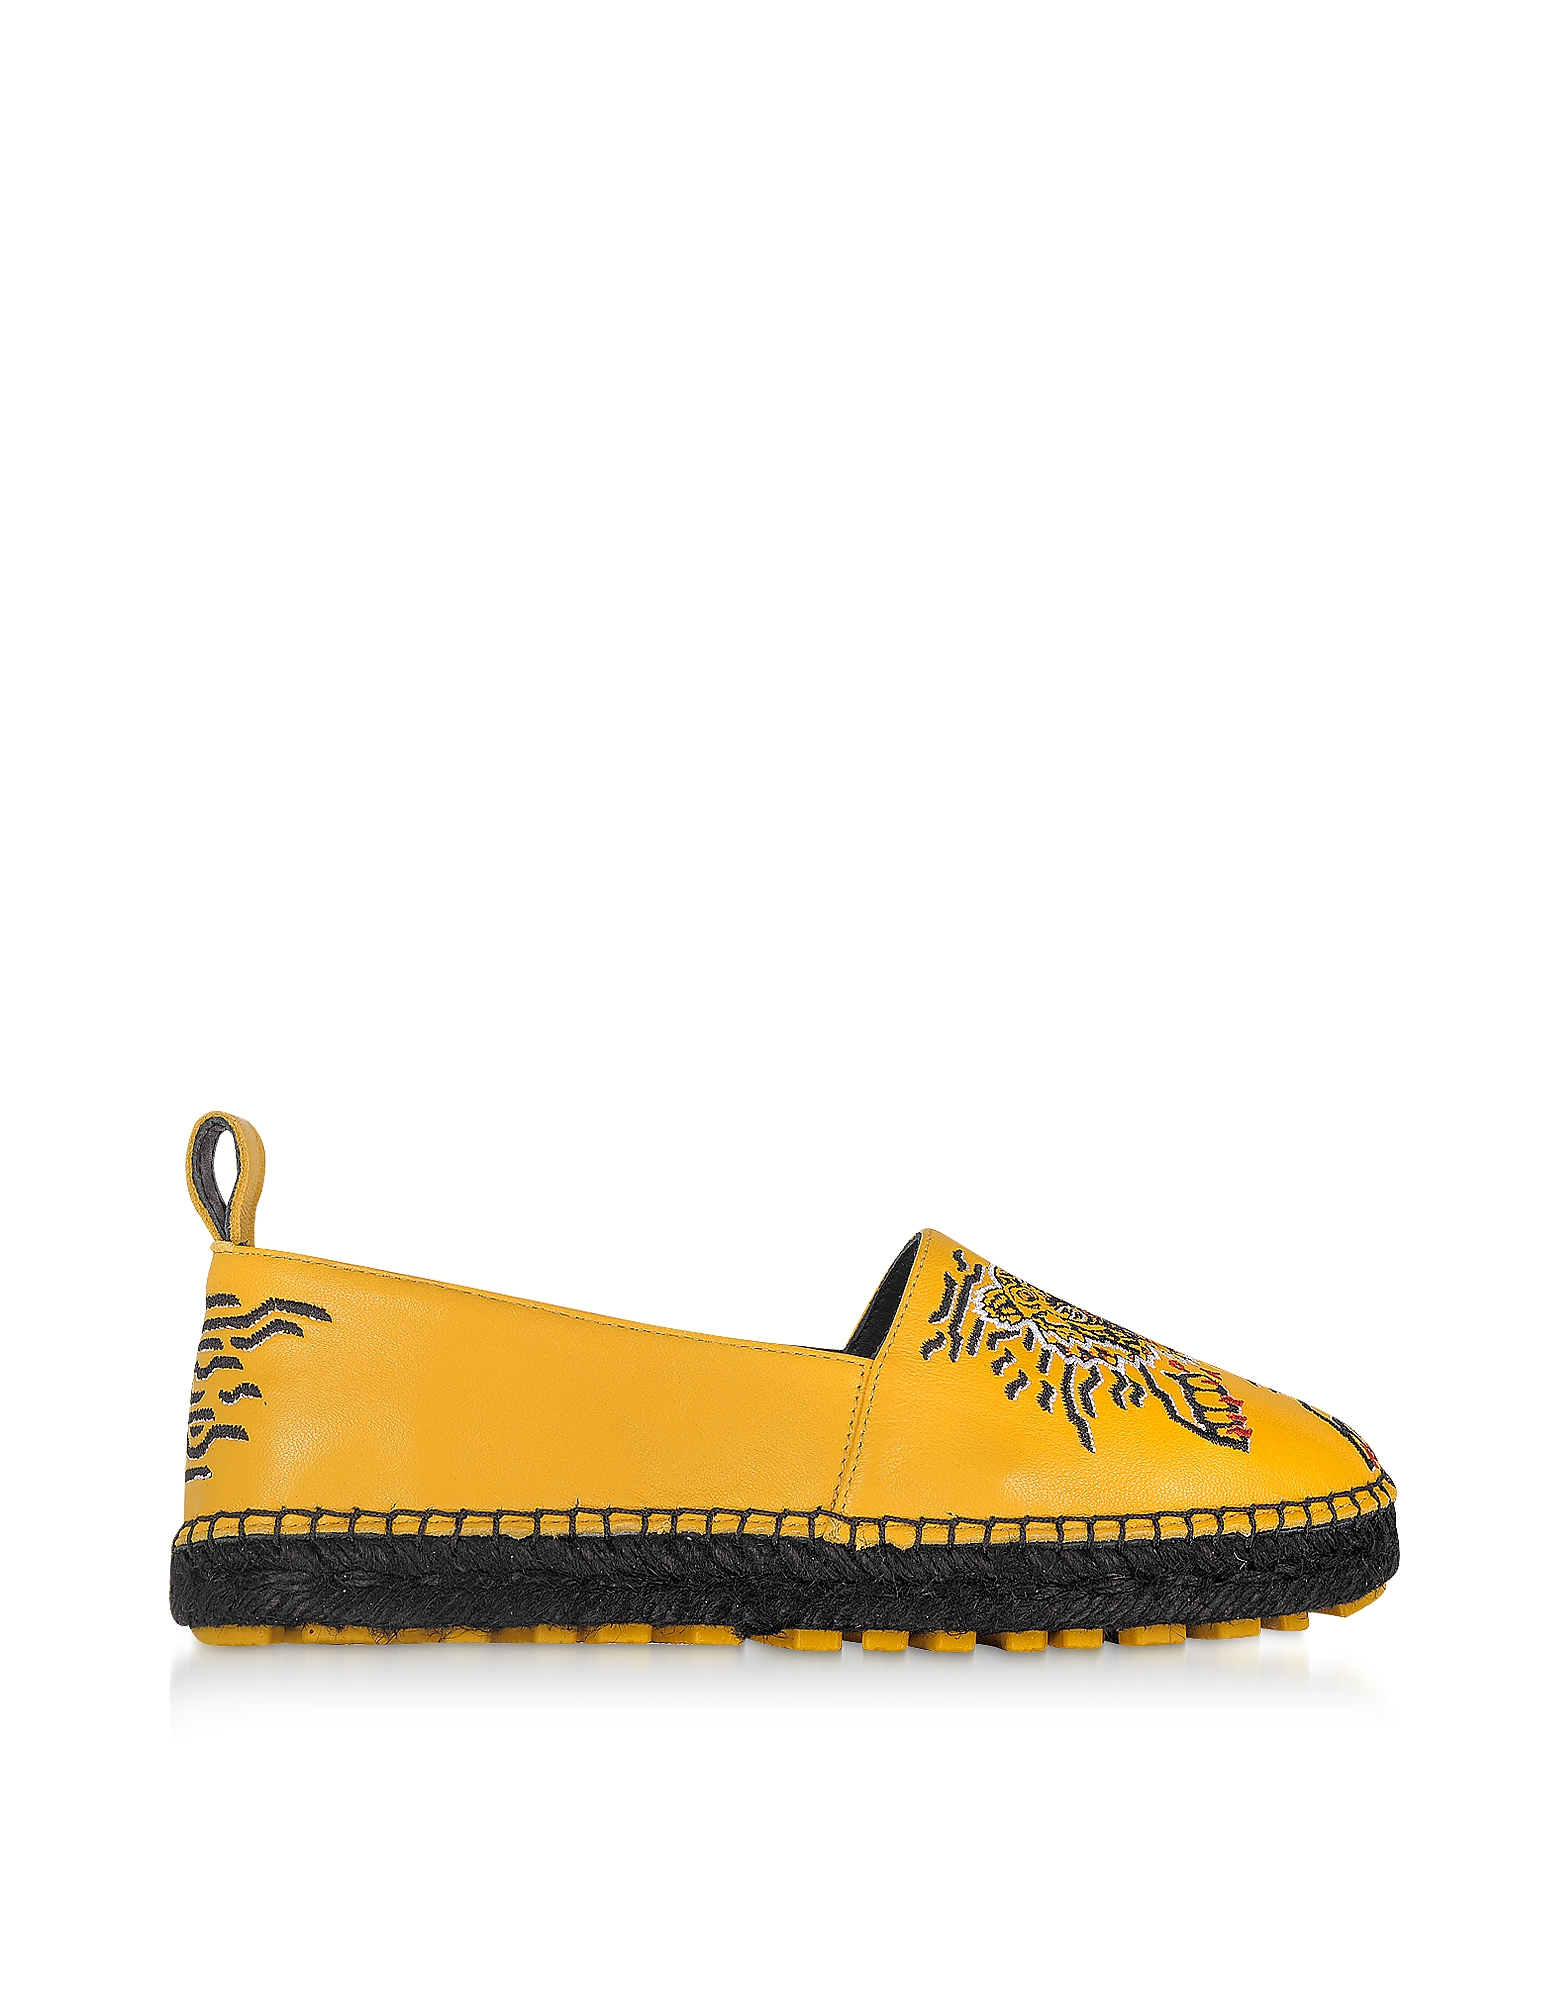 Kenzo Shoes, Sunflower Yellow Leather Tiger Espadrilles